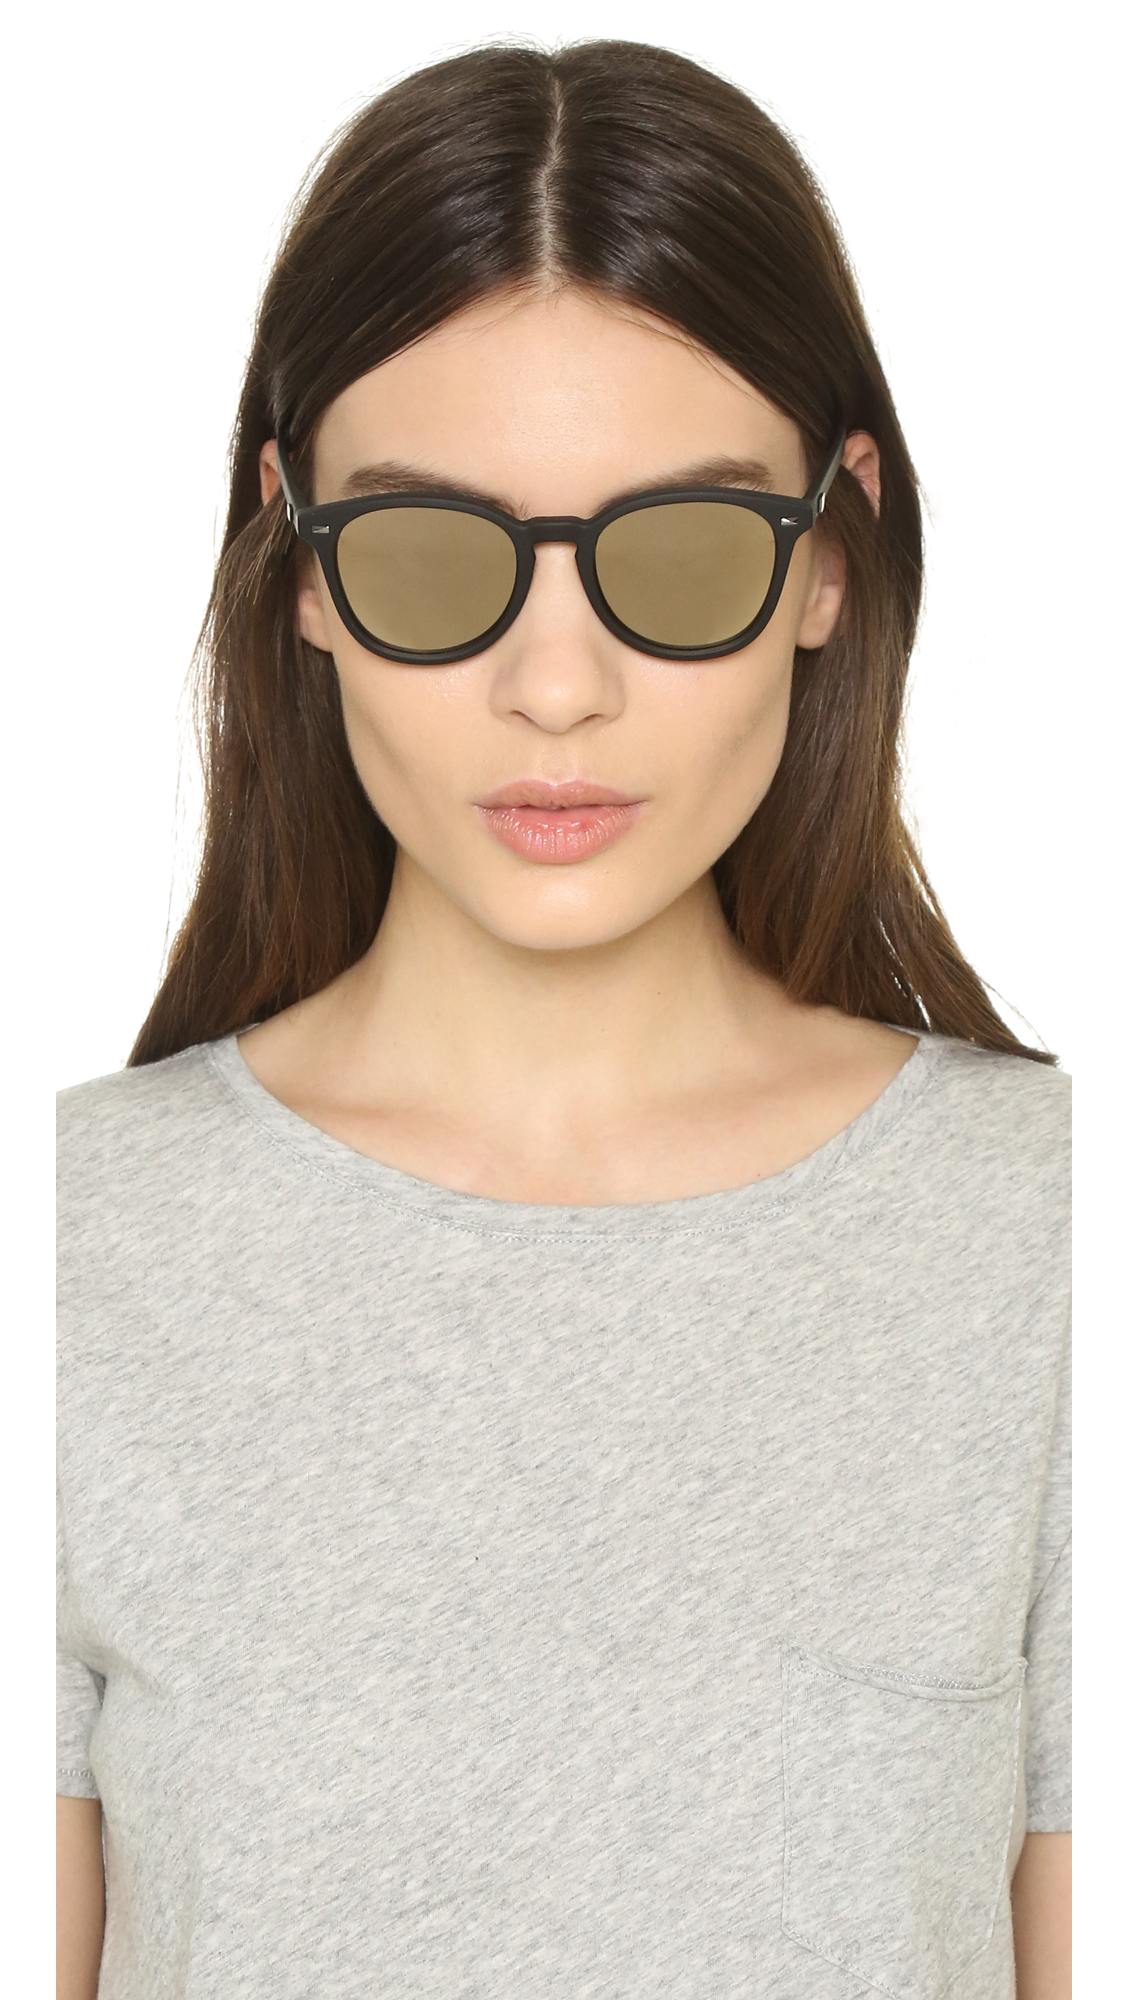 a4151e2433d Le Specs Bandwagon Sunglasses in Black - Lyst